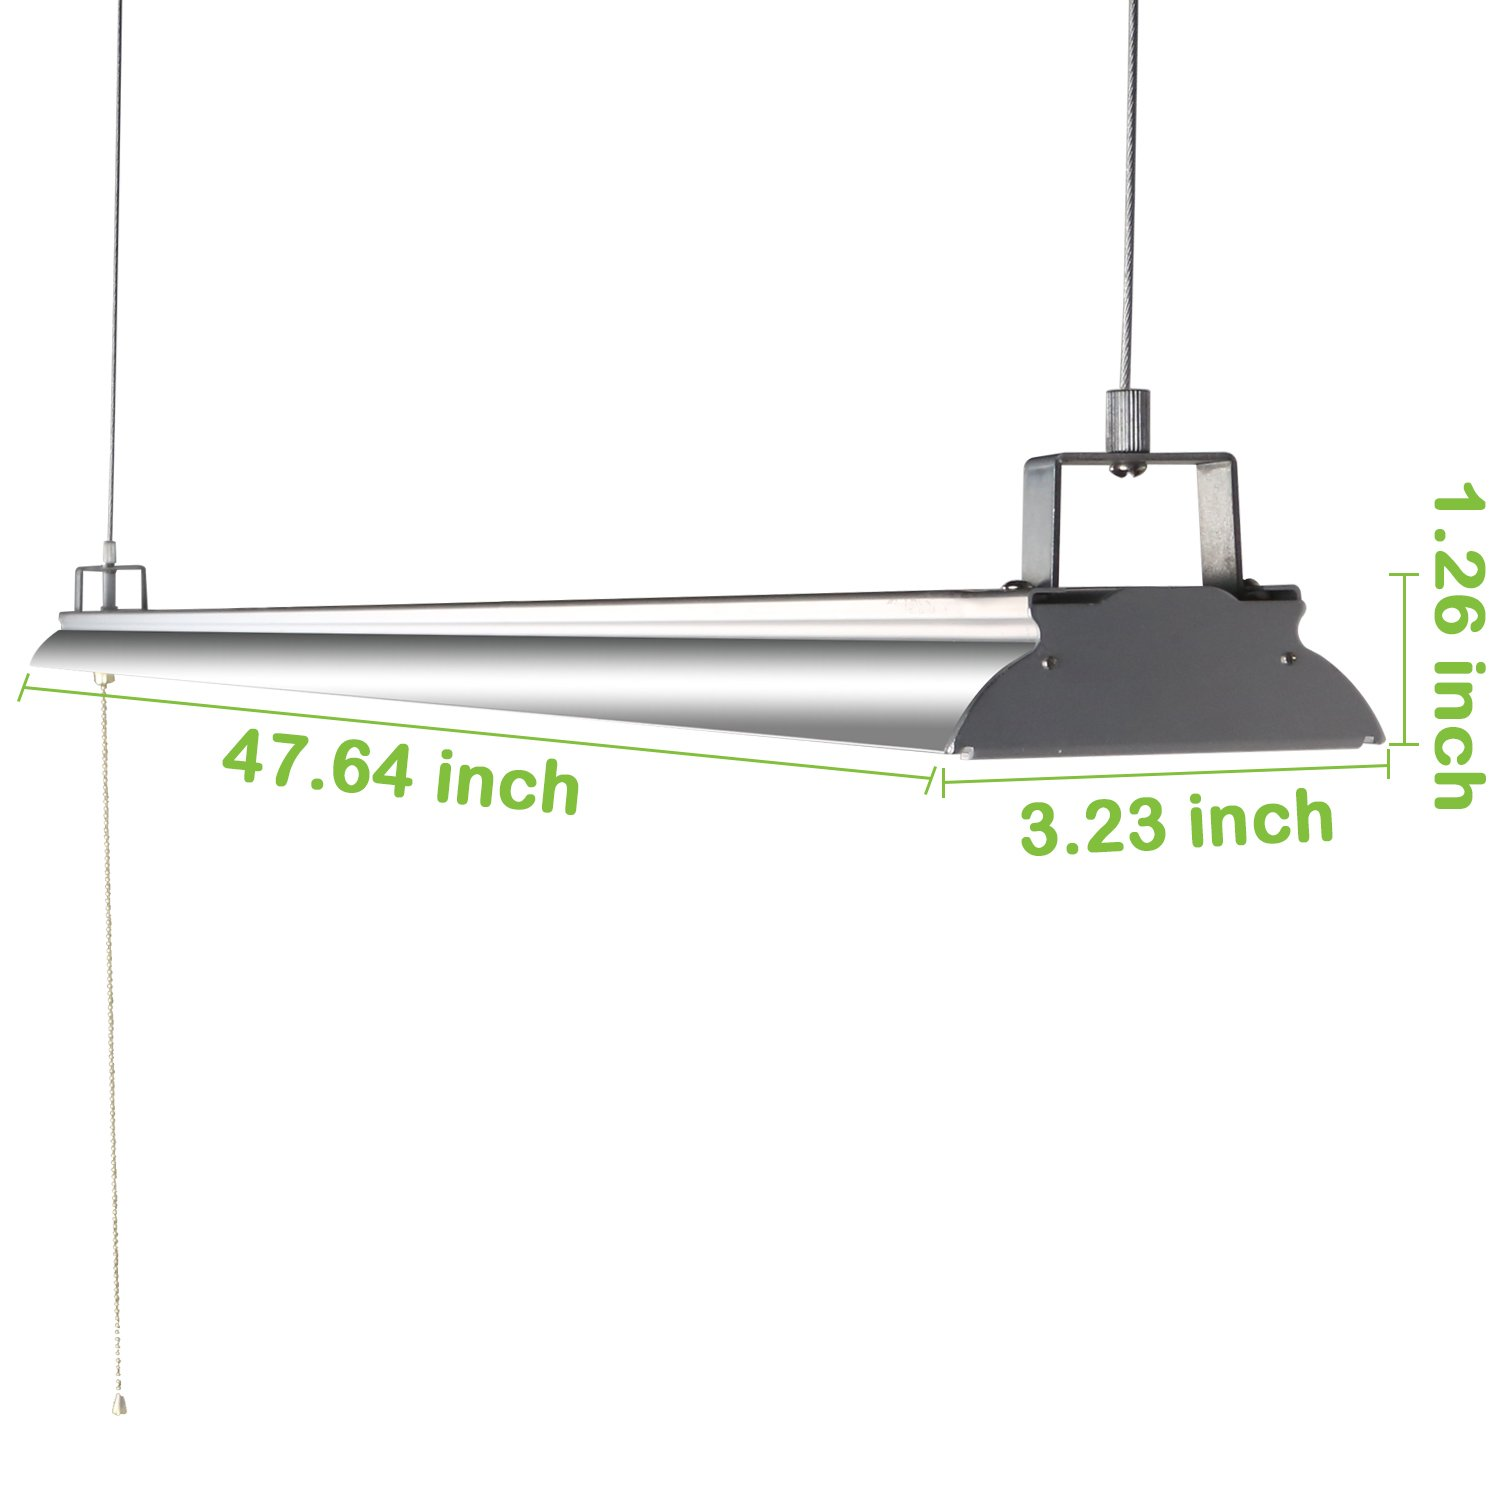 Hykolity 4FT 40W LED Shop Light with Pull Chain, 4200lm Hanging Garage Utility Light with Cord, Robust Aluminium Body, 5000K Workbench Light, 64w Fluorescent Fixture Equivalent, 5year Warranty-4 Pack by hykolity (Image #5)